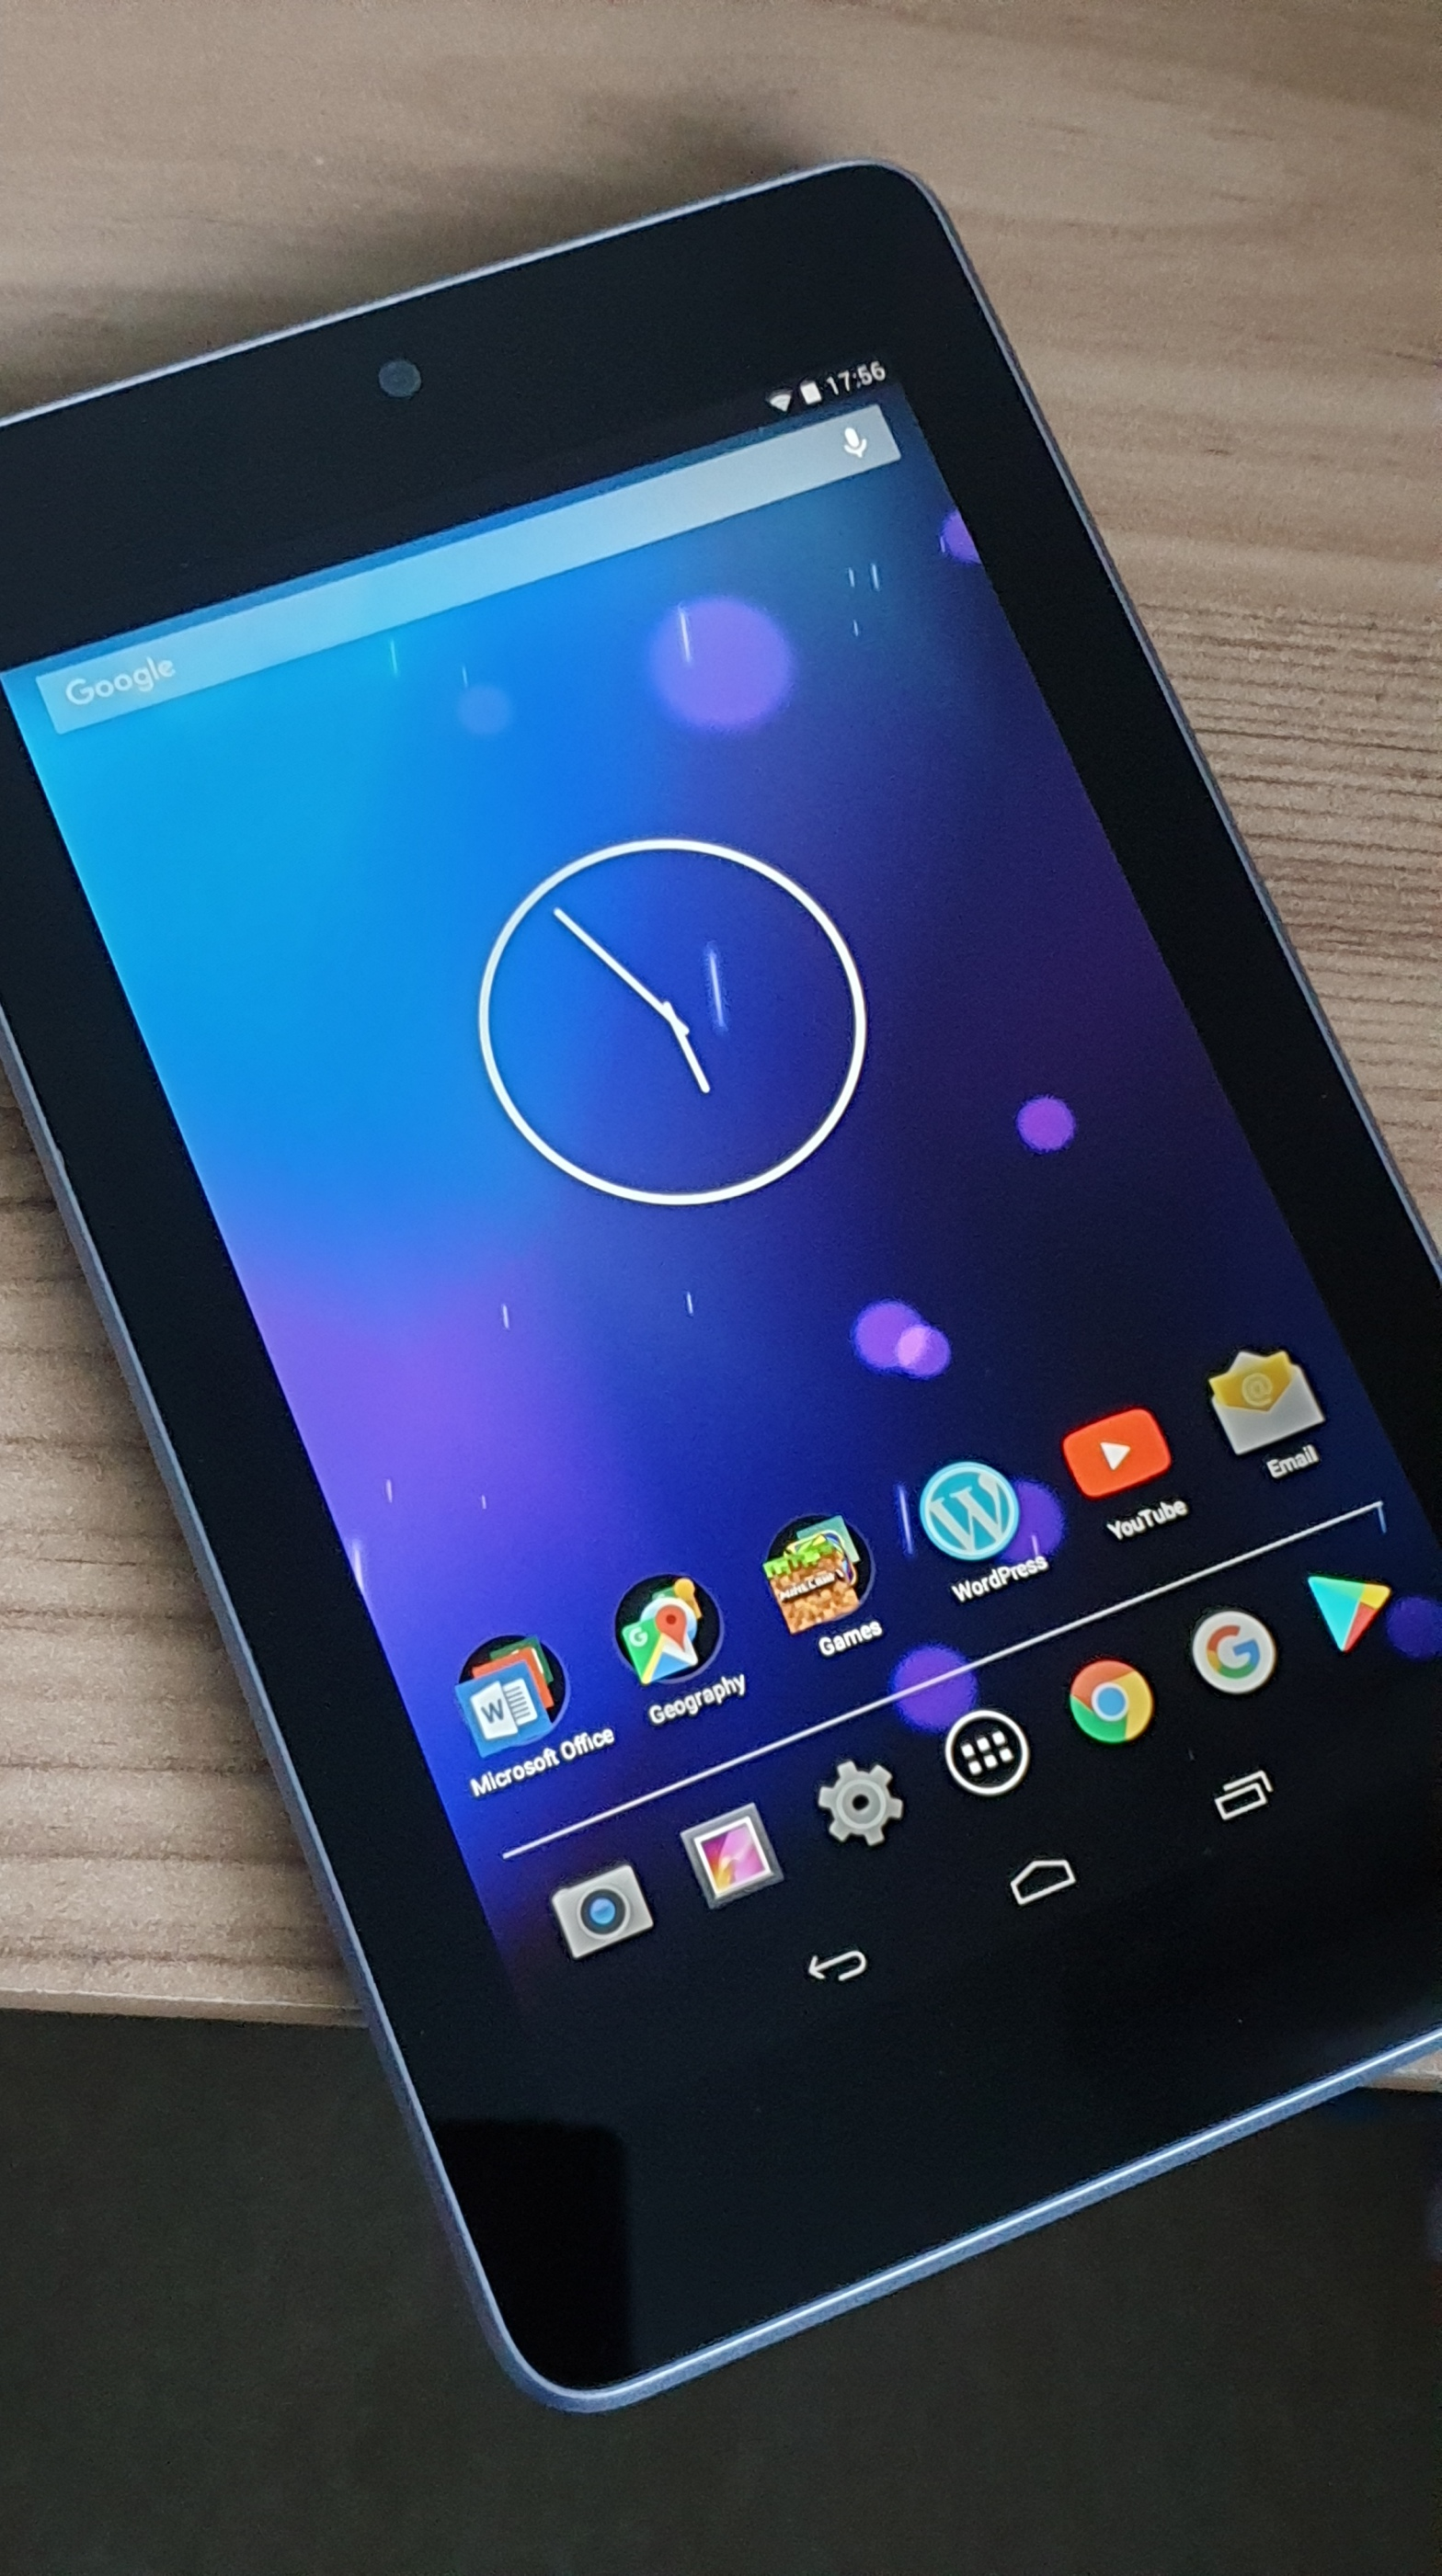 Nexus 7 2012 Why Are There No Android 10 Or 9 Roms Available And Why Has The Only Android 8 1 Rom Available Only Been Released Recently Epicchasgamer Com